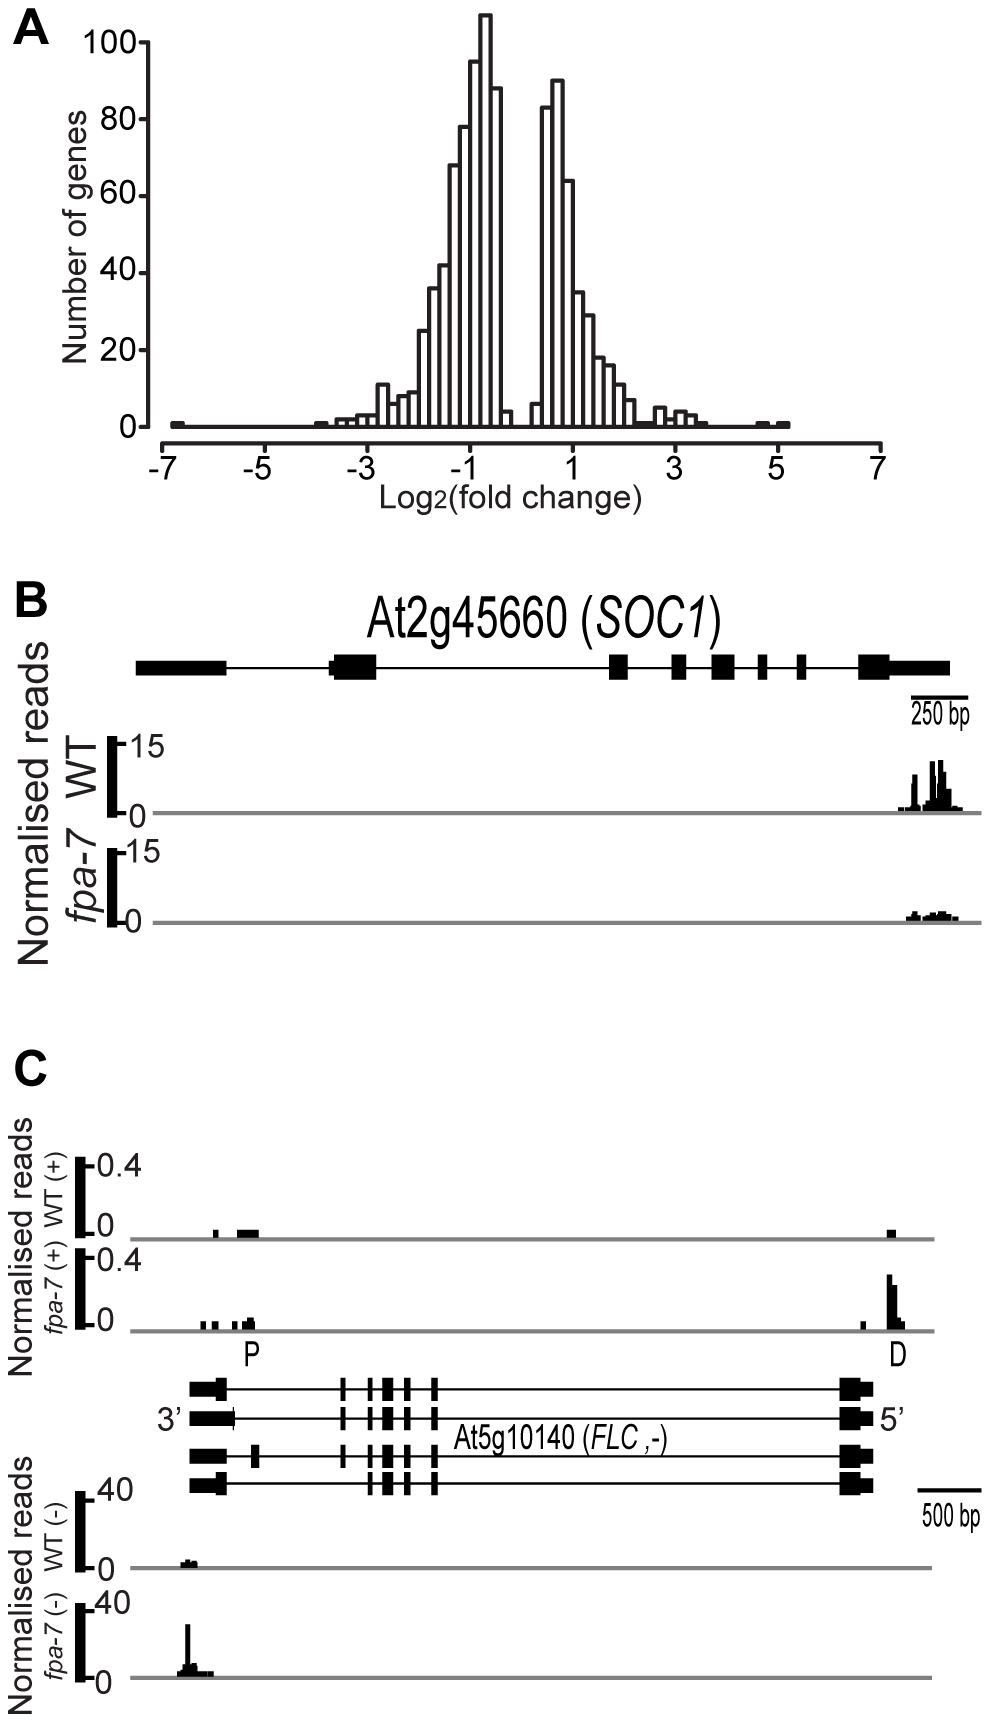 Differentially expressed genes between wild-type and <i>fpa-7</i>.